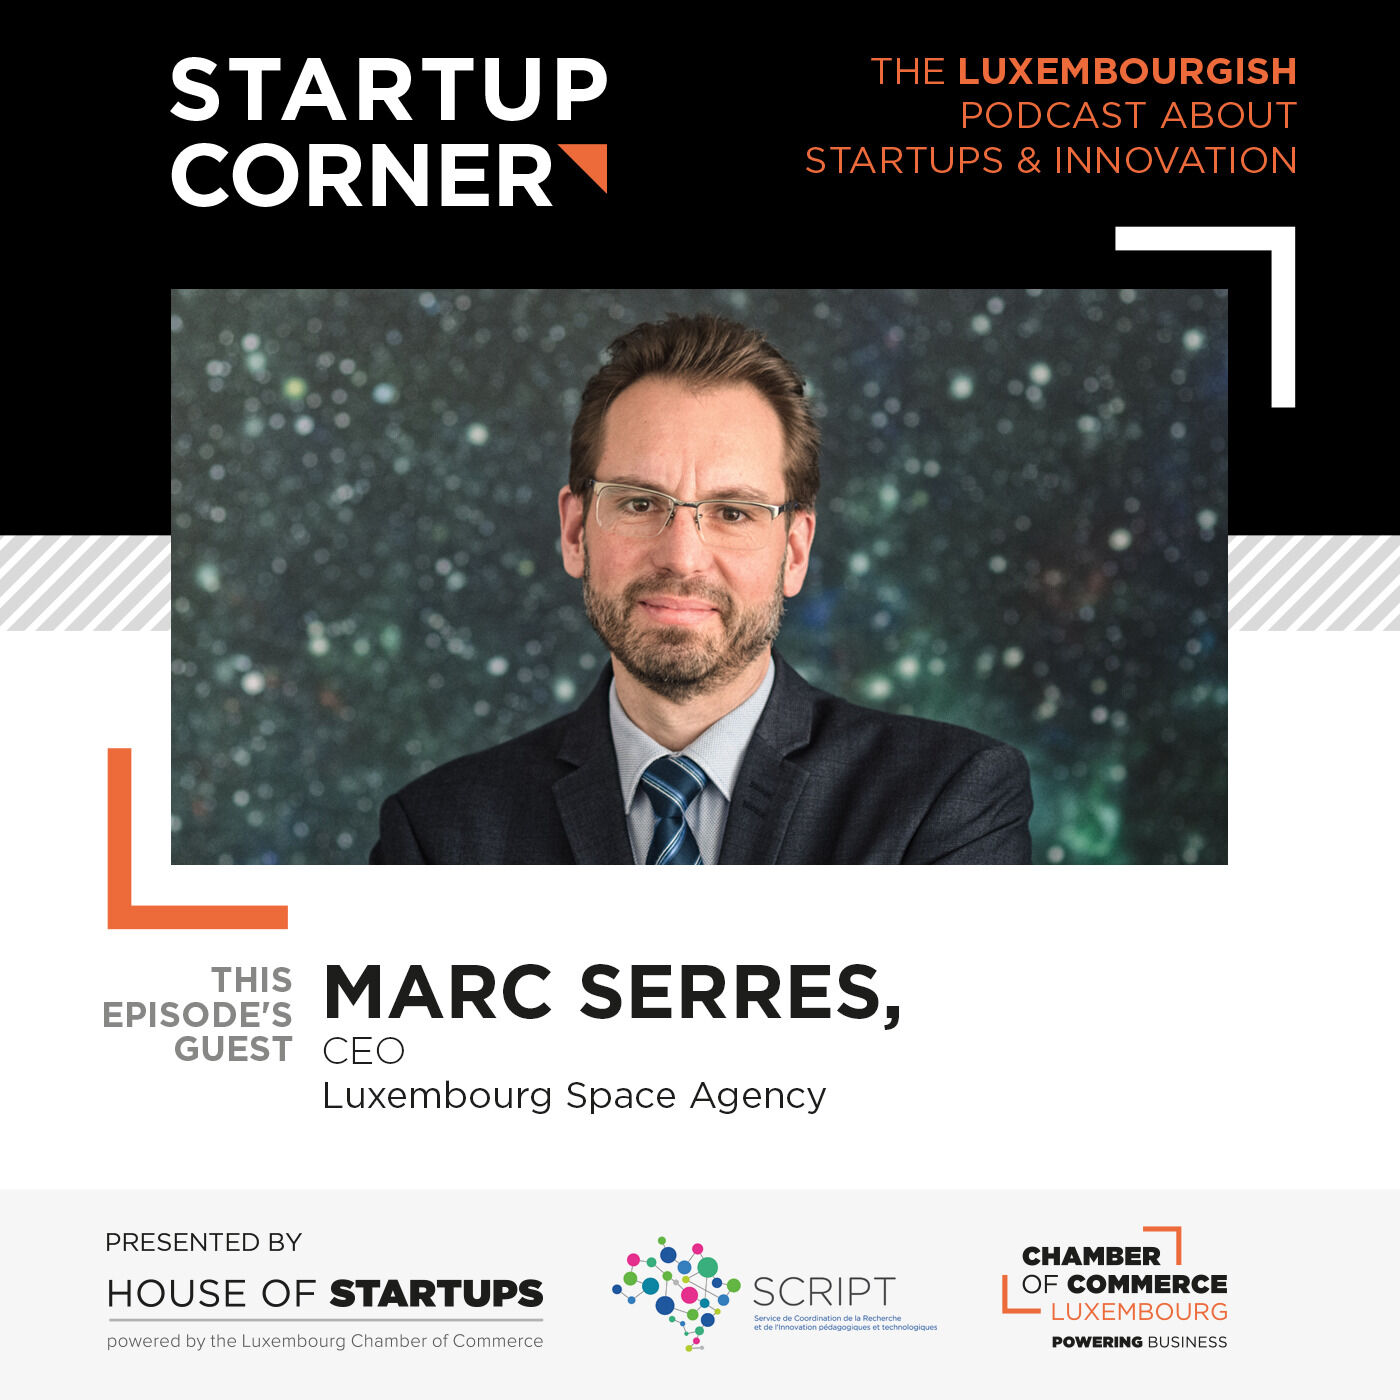 Startup Corner - Marc Serres - LSA (Luxembourg Space Agency)